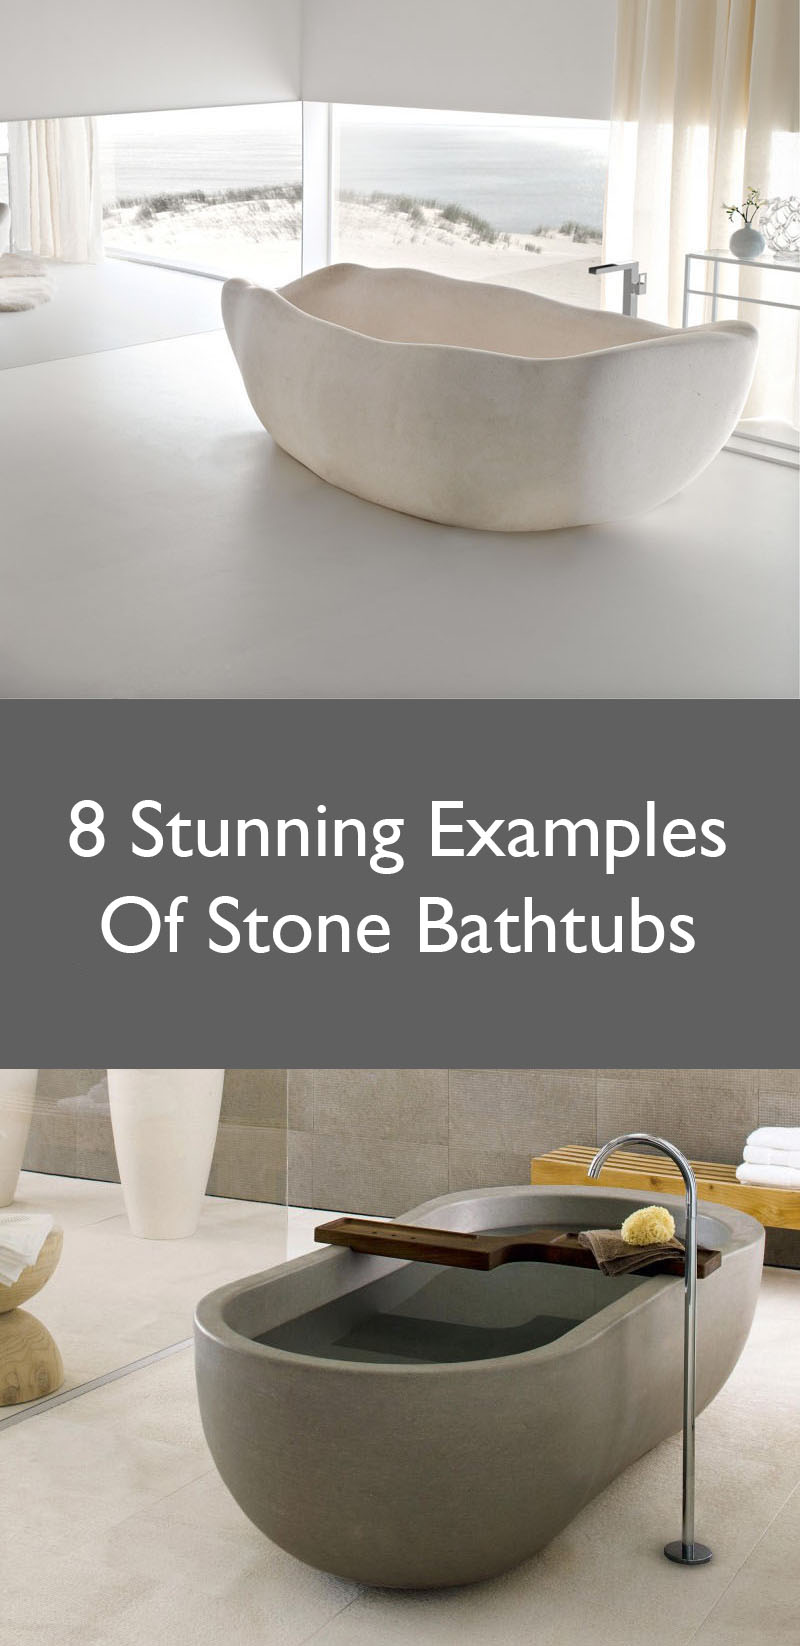 8 Stunning Examples Of Stone Bathtubs //